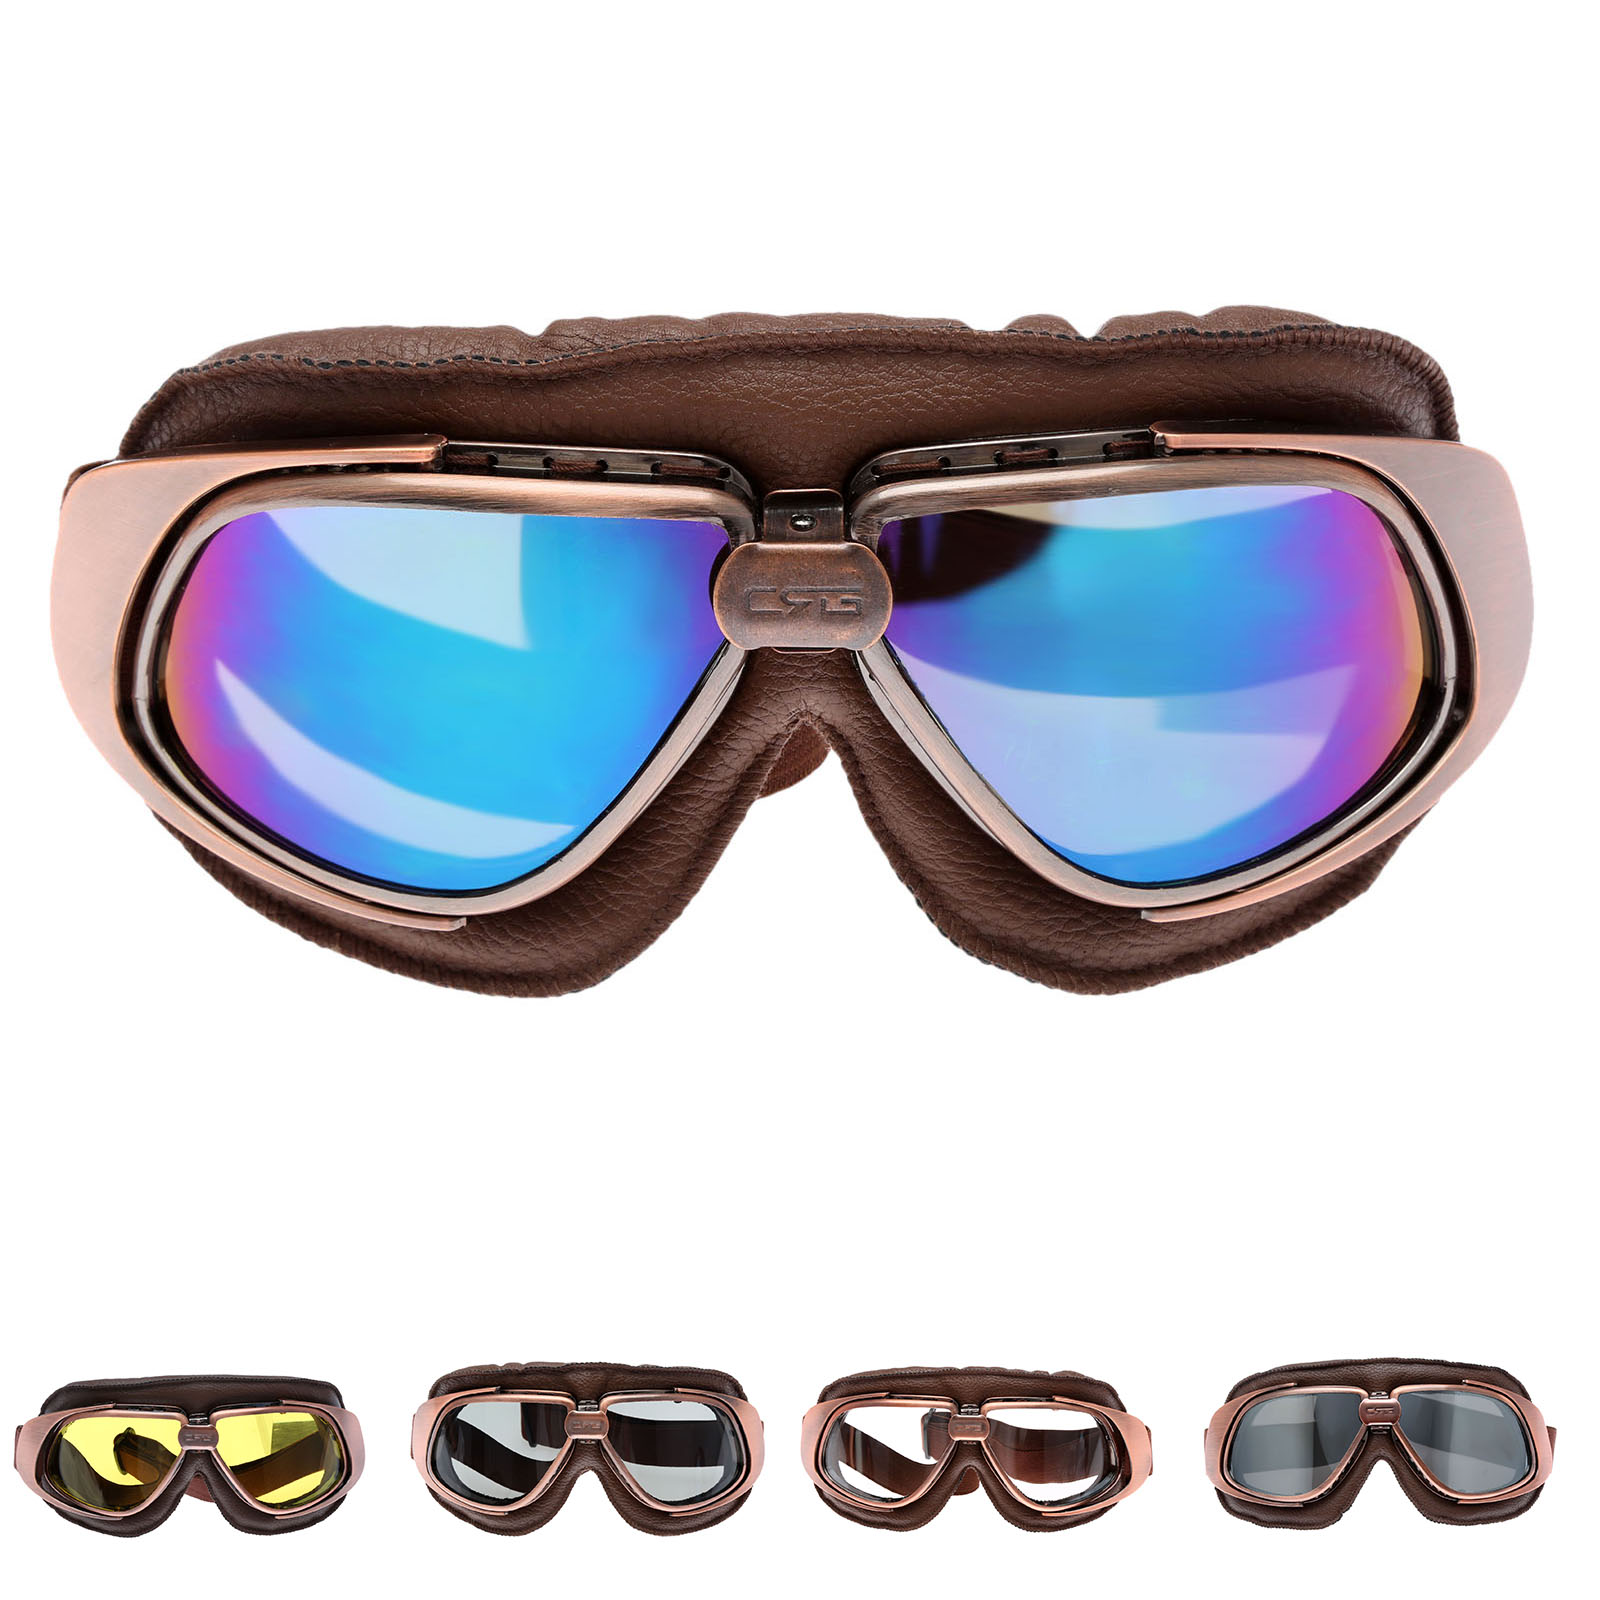 Vintage Motorcycle Goggles Smoking Steampunk Motocross Helmet Glasses UV Protection Sport Ski Skate Goggle Sunglasses For Harley